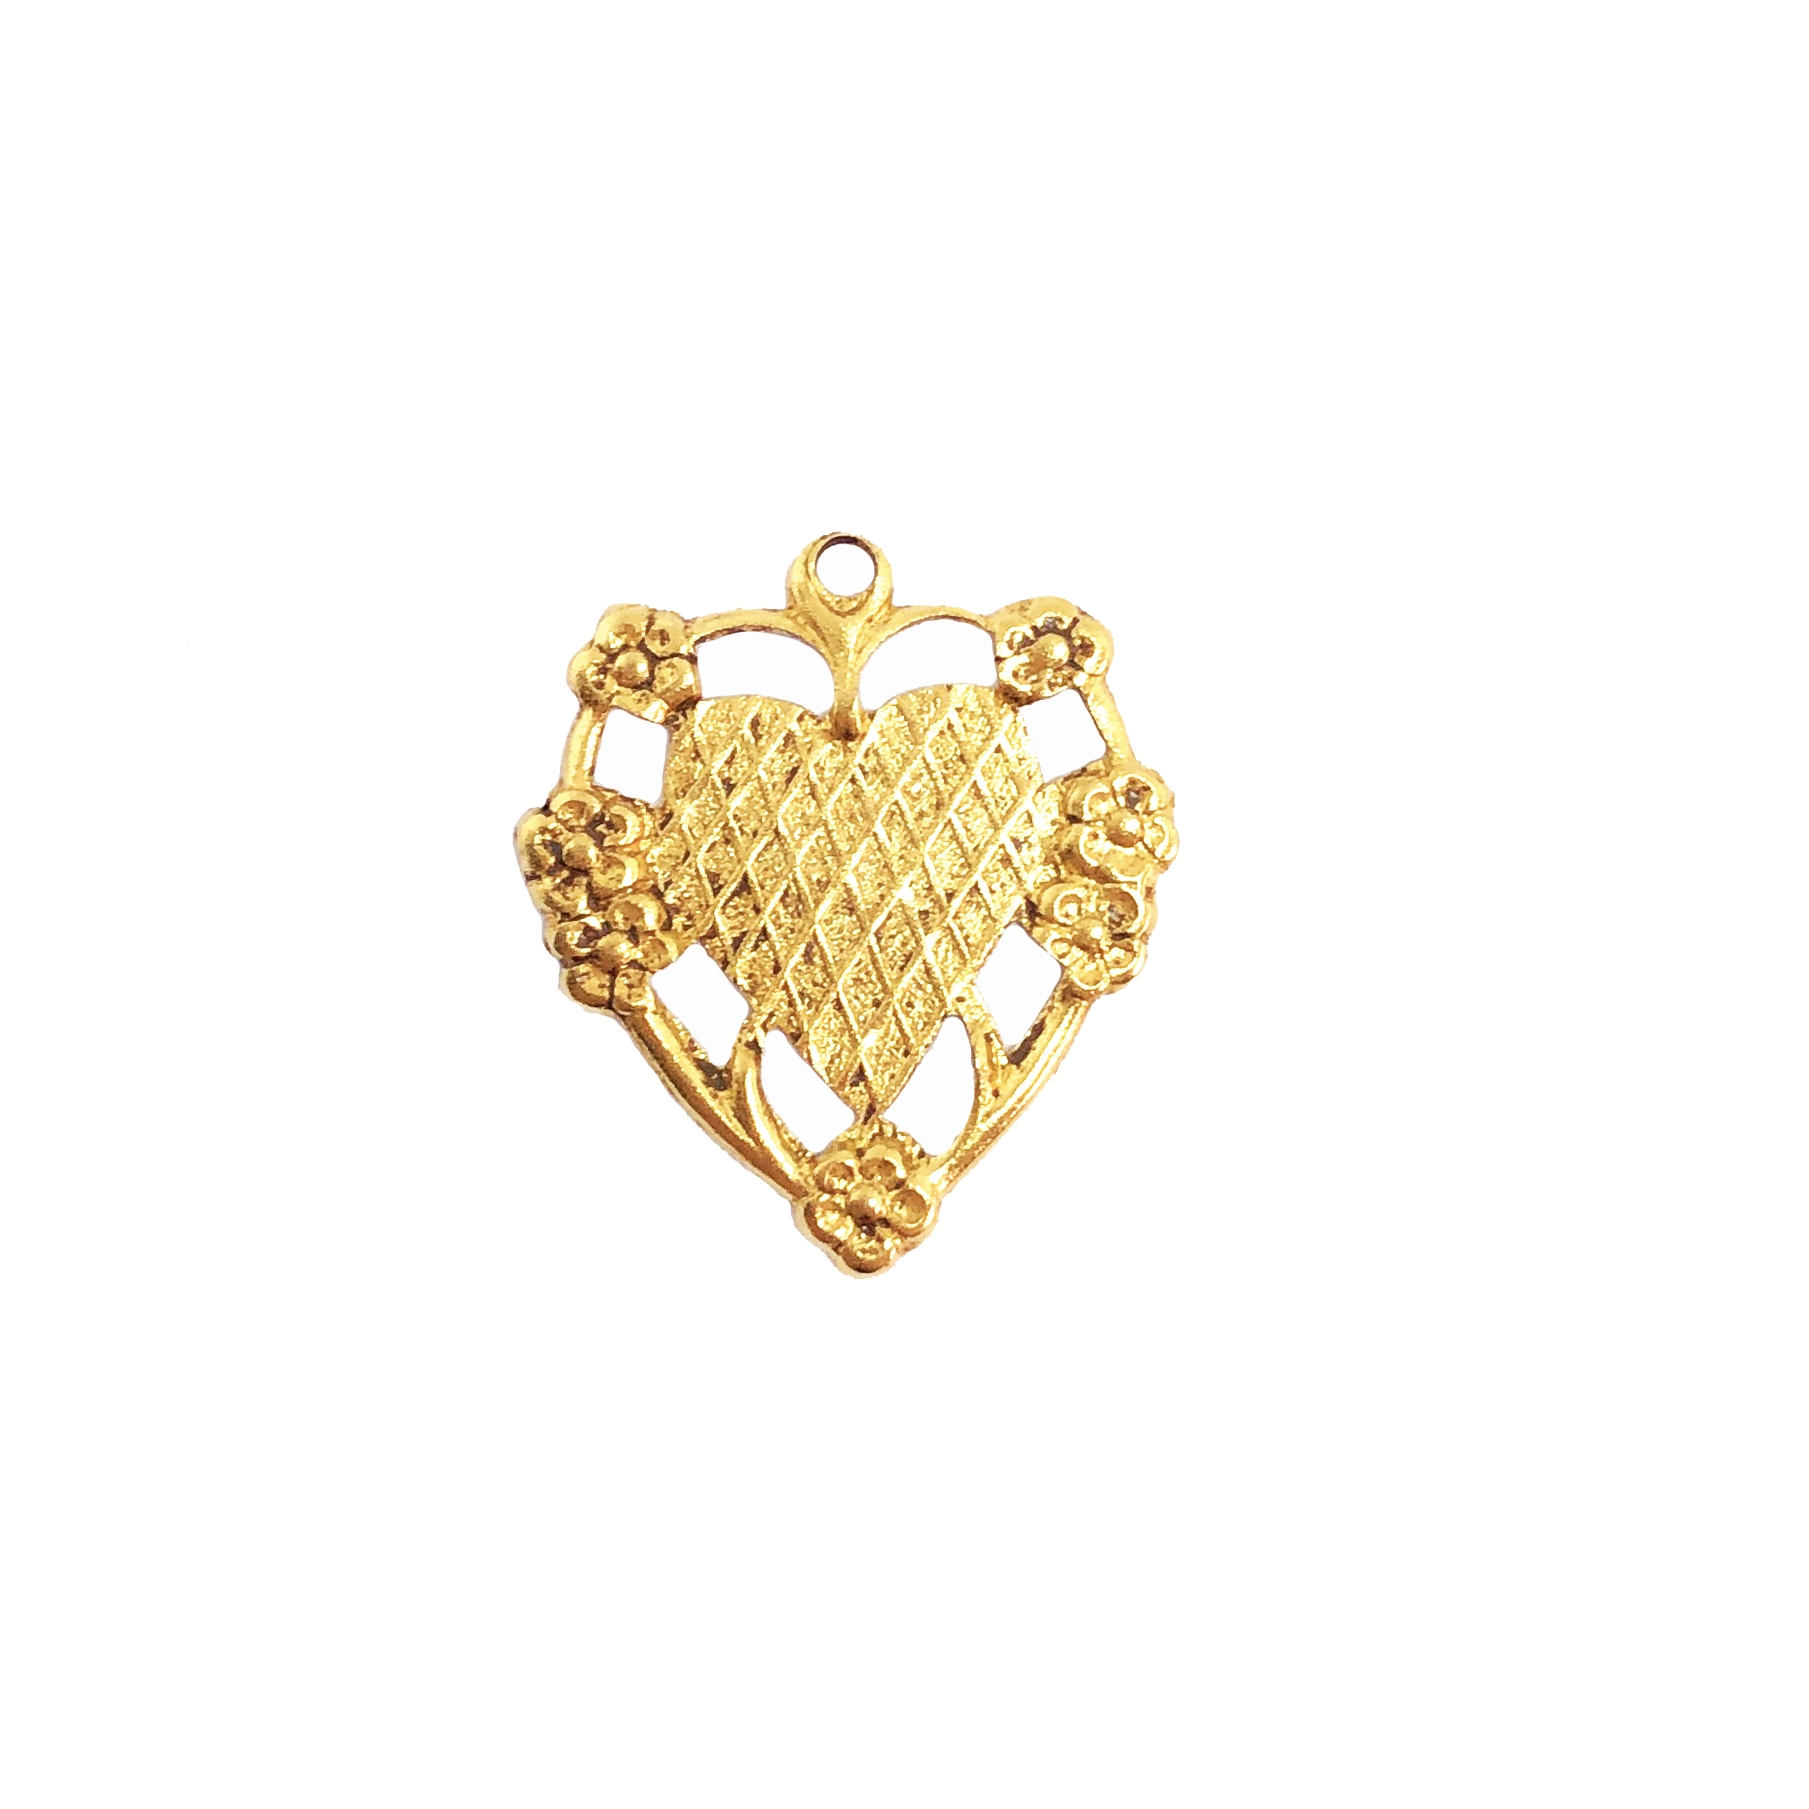 floral heart charm, classic gold plate, mount, heart, charm, mount charm, brass stamping, heart charm, brass, US made, floral heart, B'sue Boutiques, 20x17mm, jewelry making, jewelry supplies, vintage supplies, jewelry findings, 09758